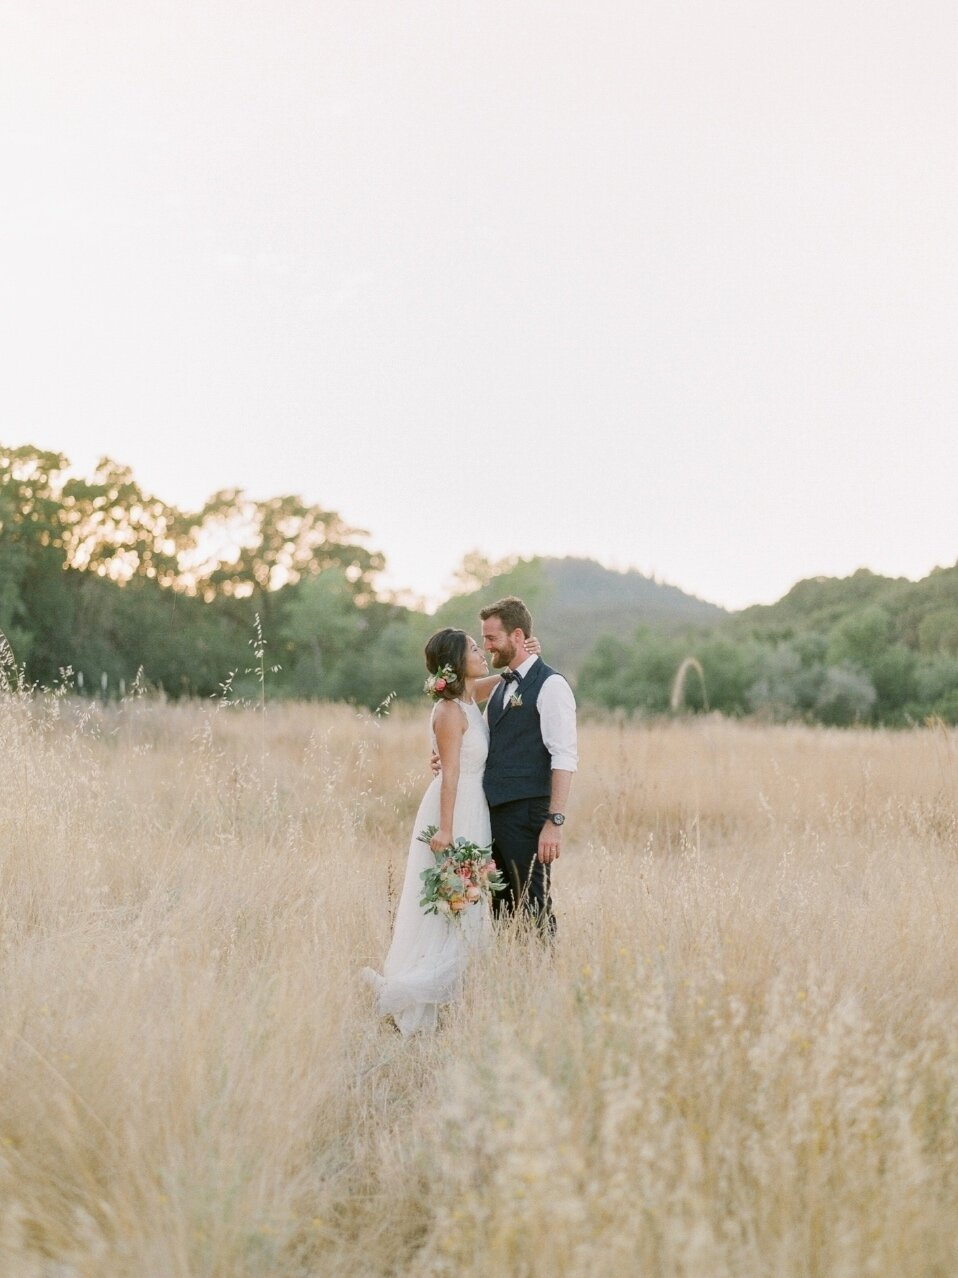 Internationals destination wedding photographer Madalina Sheldon